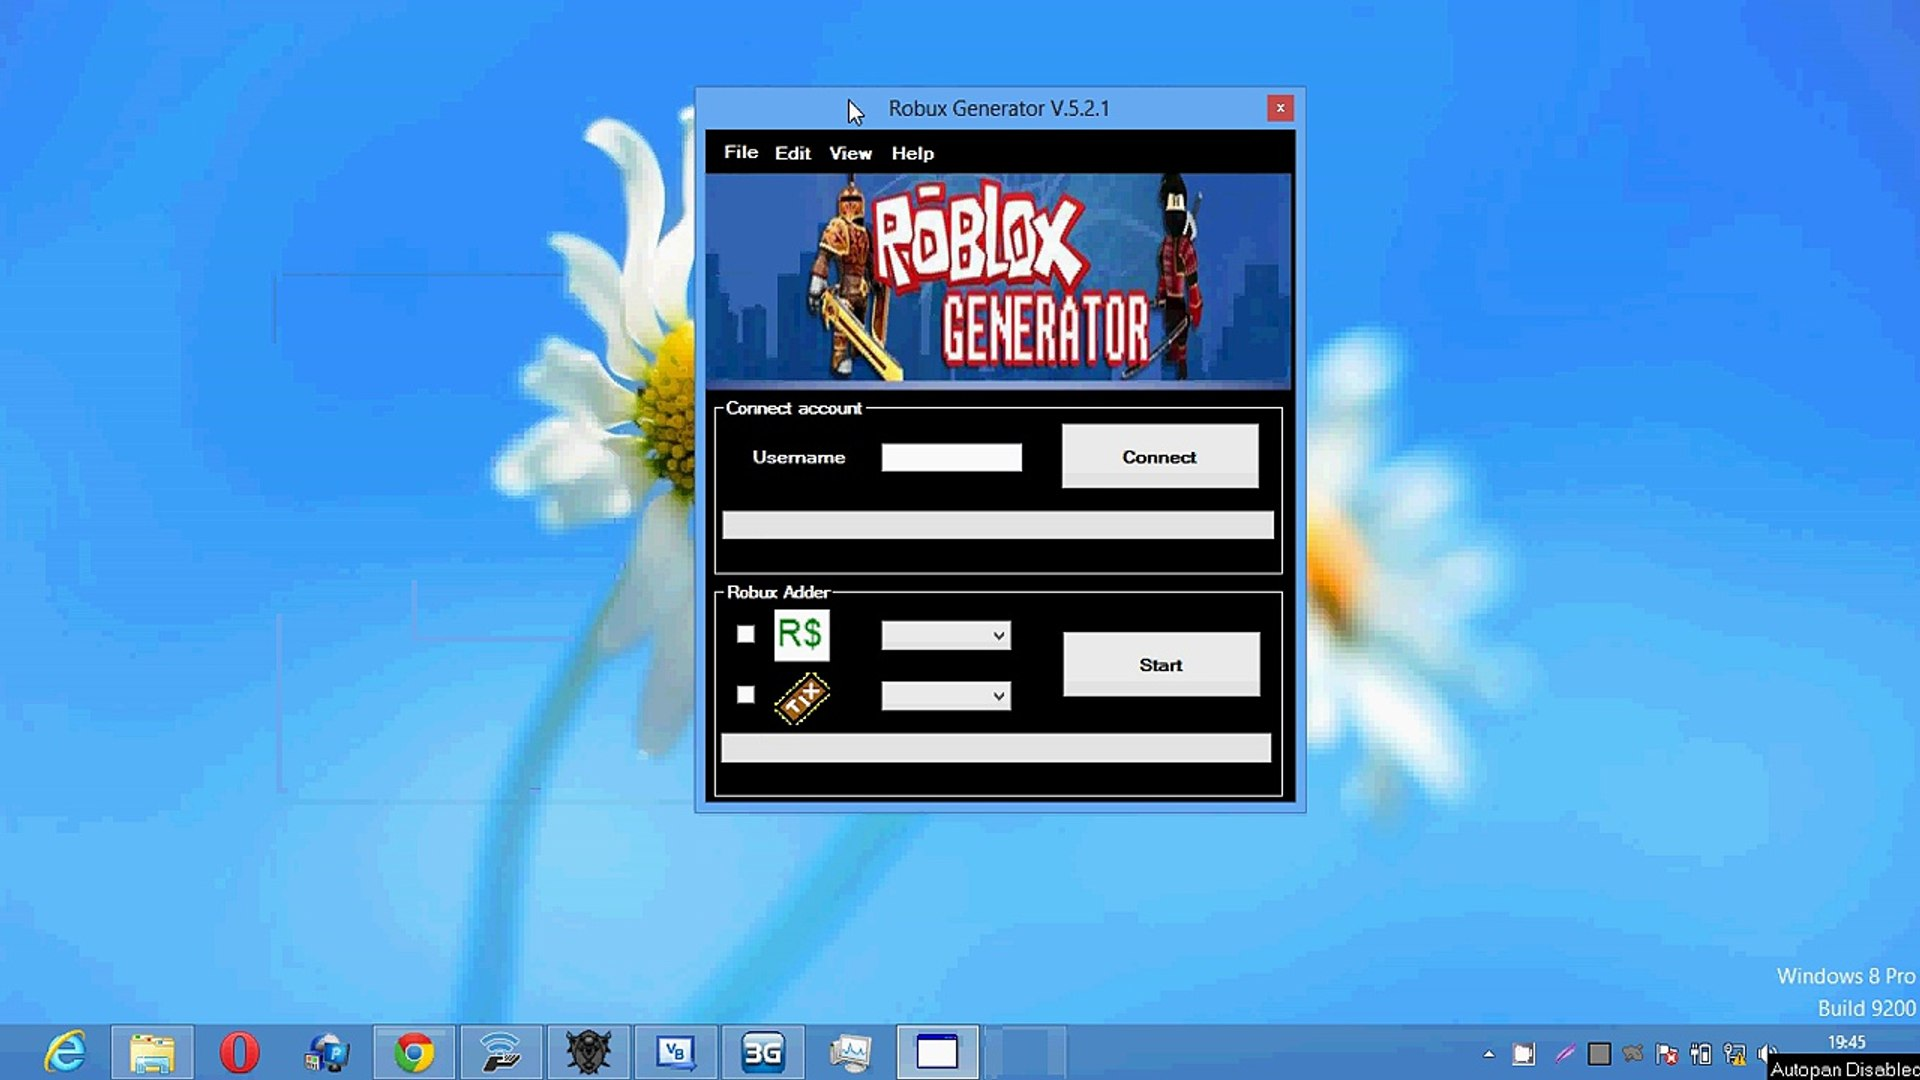 Robux Generator 32 Robux Generator V5 2 1 Get Free Robux Instanly Video Dailymotion